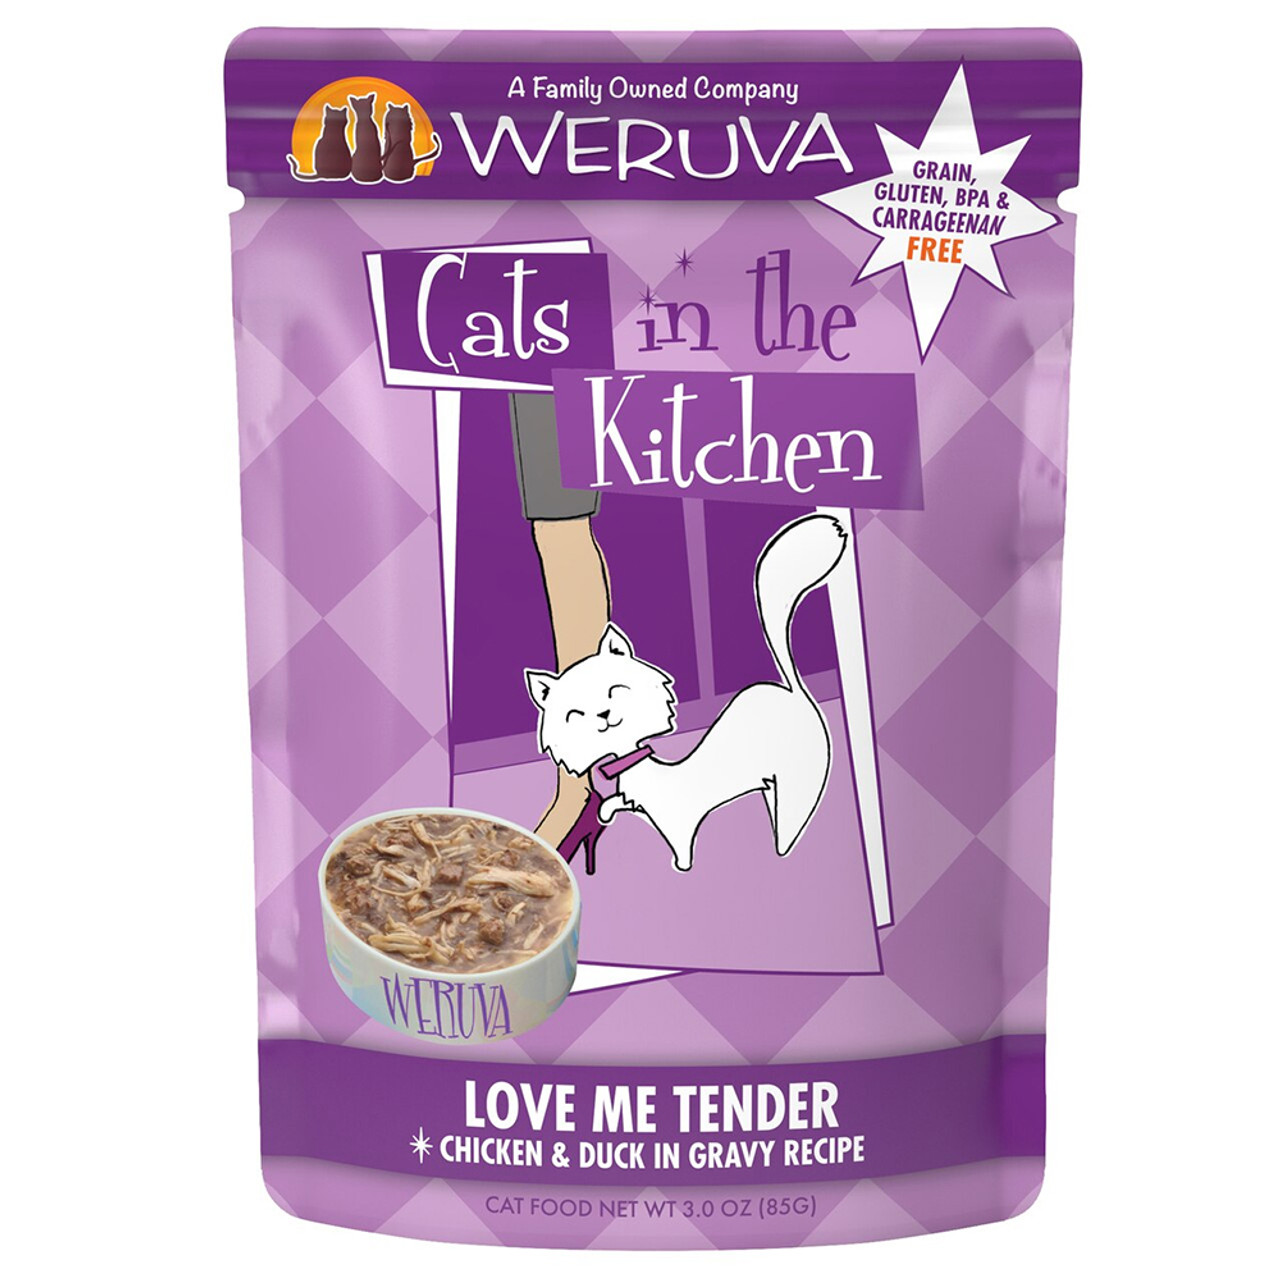 Cats in the Kitchen Love Me Tender Chicken & Duck in Gravy Recipe Cat Food Pouch